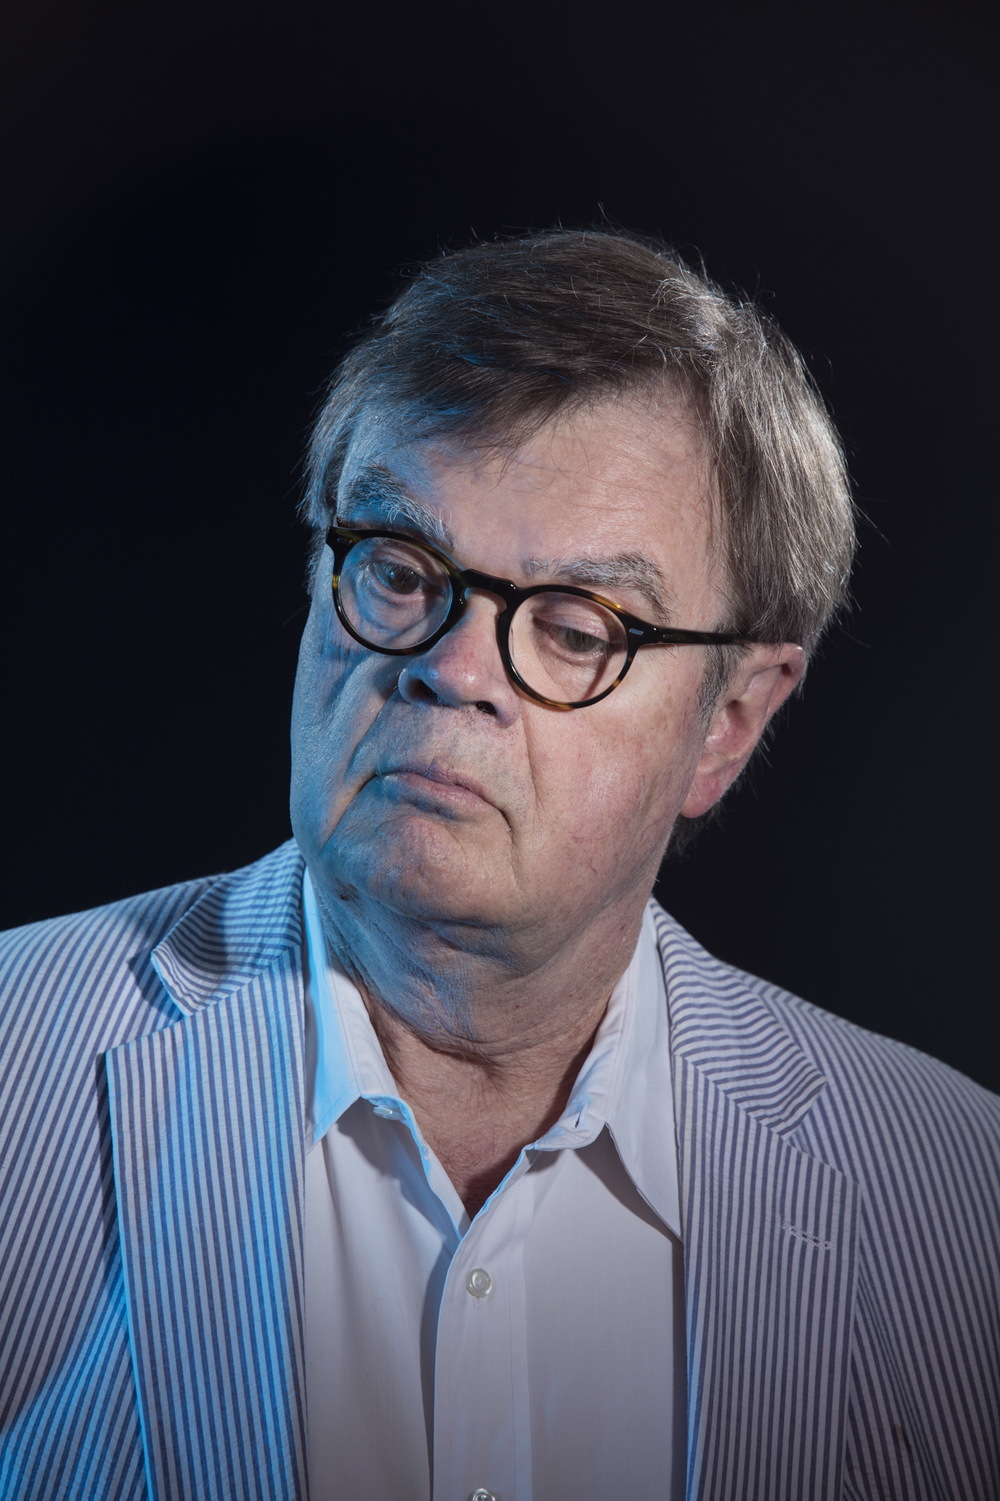 Garrison Keillor for The New York Times